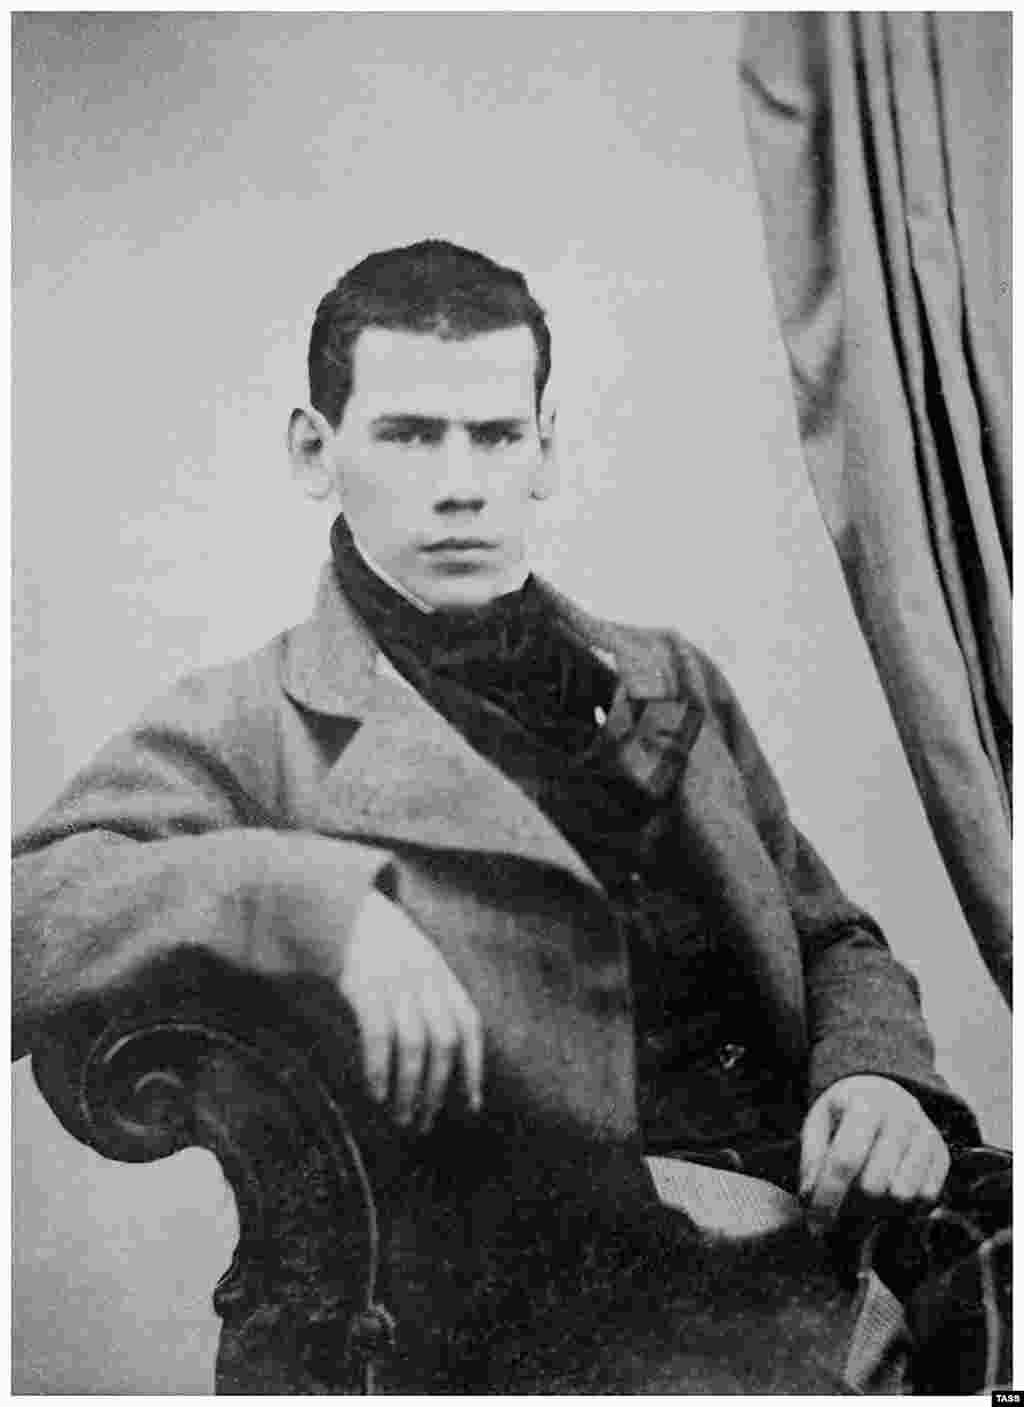 Leo Nikolaevich Tolstoy poses for a portrait at the age of 20. The young nobleman was born into a wealthy rural family in 1828. Both of Tolstoy's parents died when he was a boy.